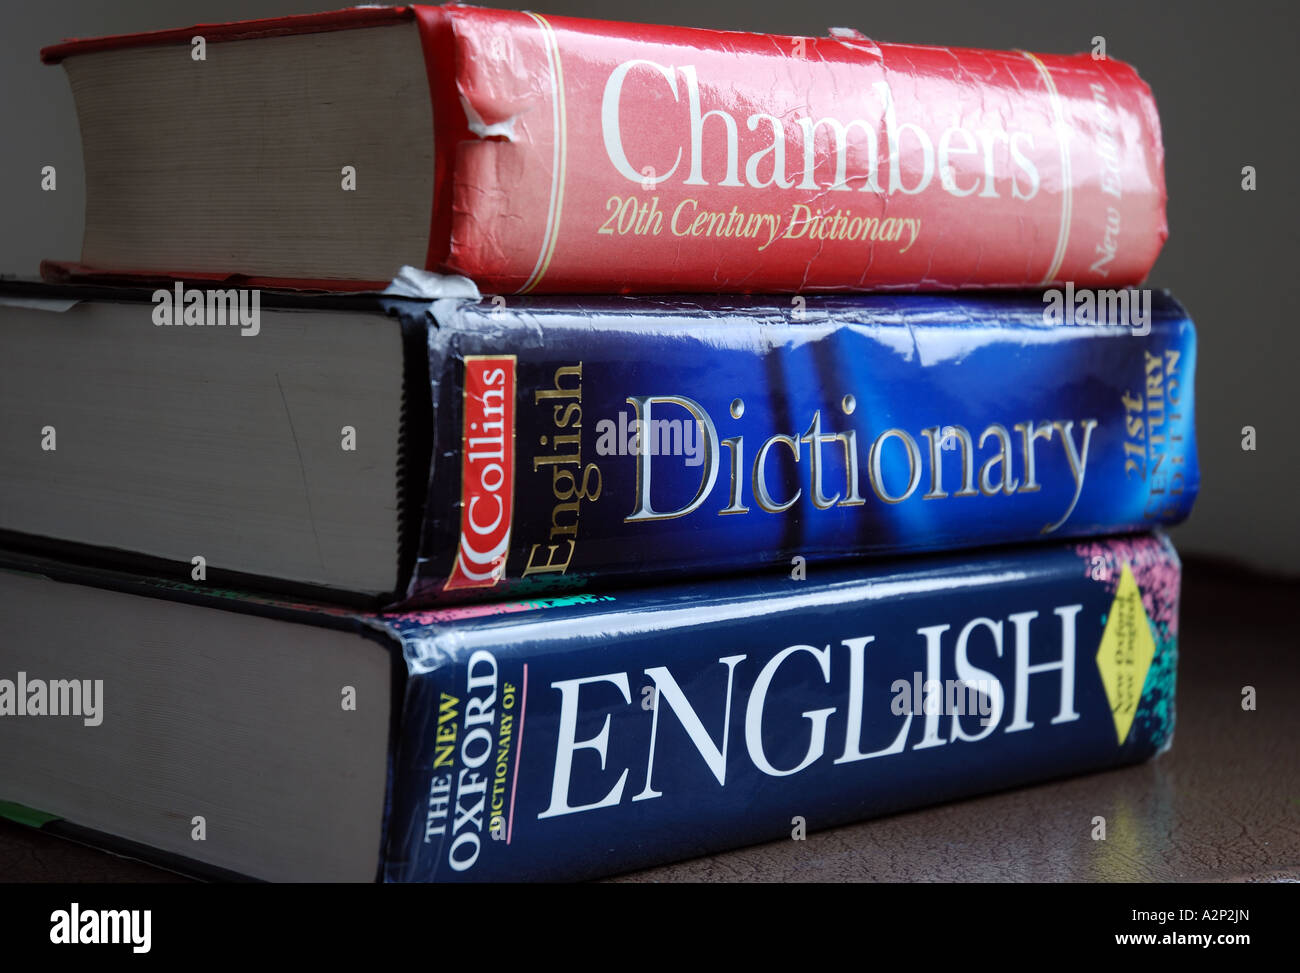 Collins English Dictionary Reference Book Imágenes De Stock